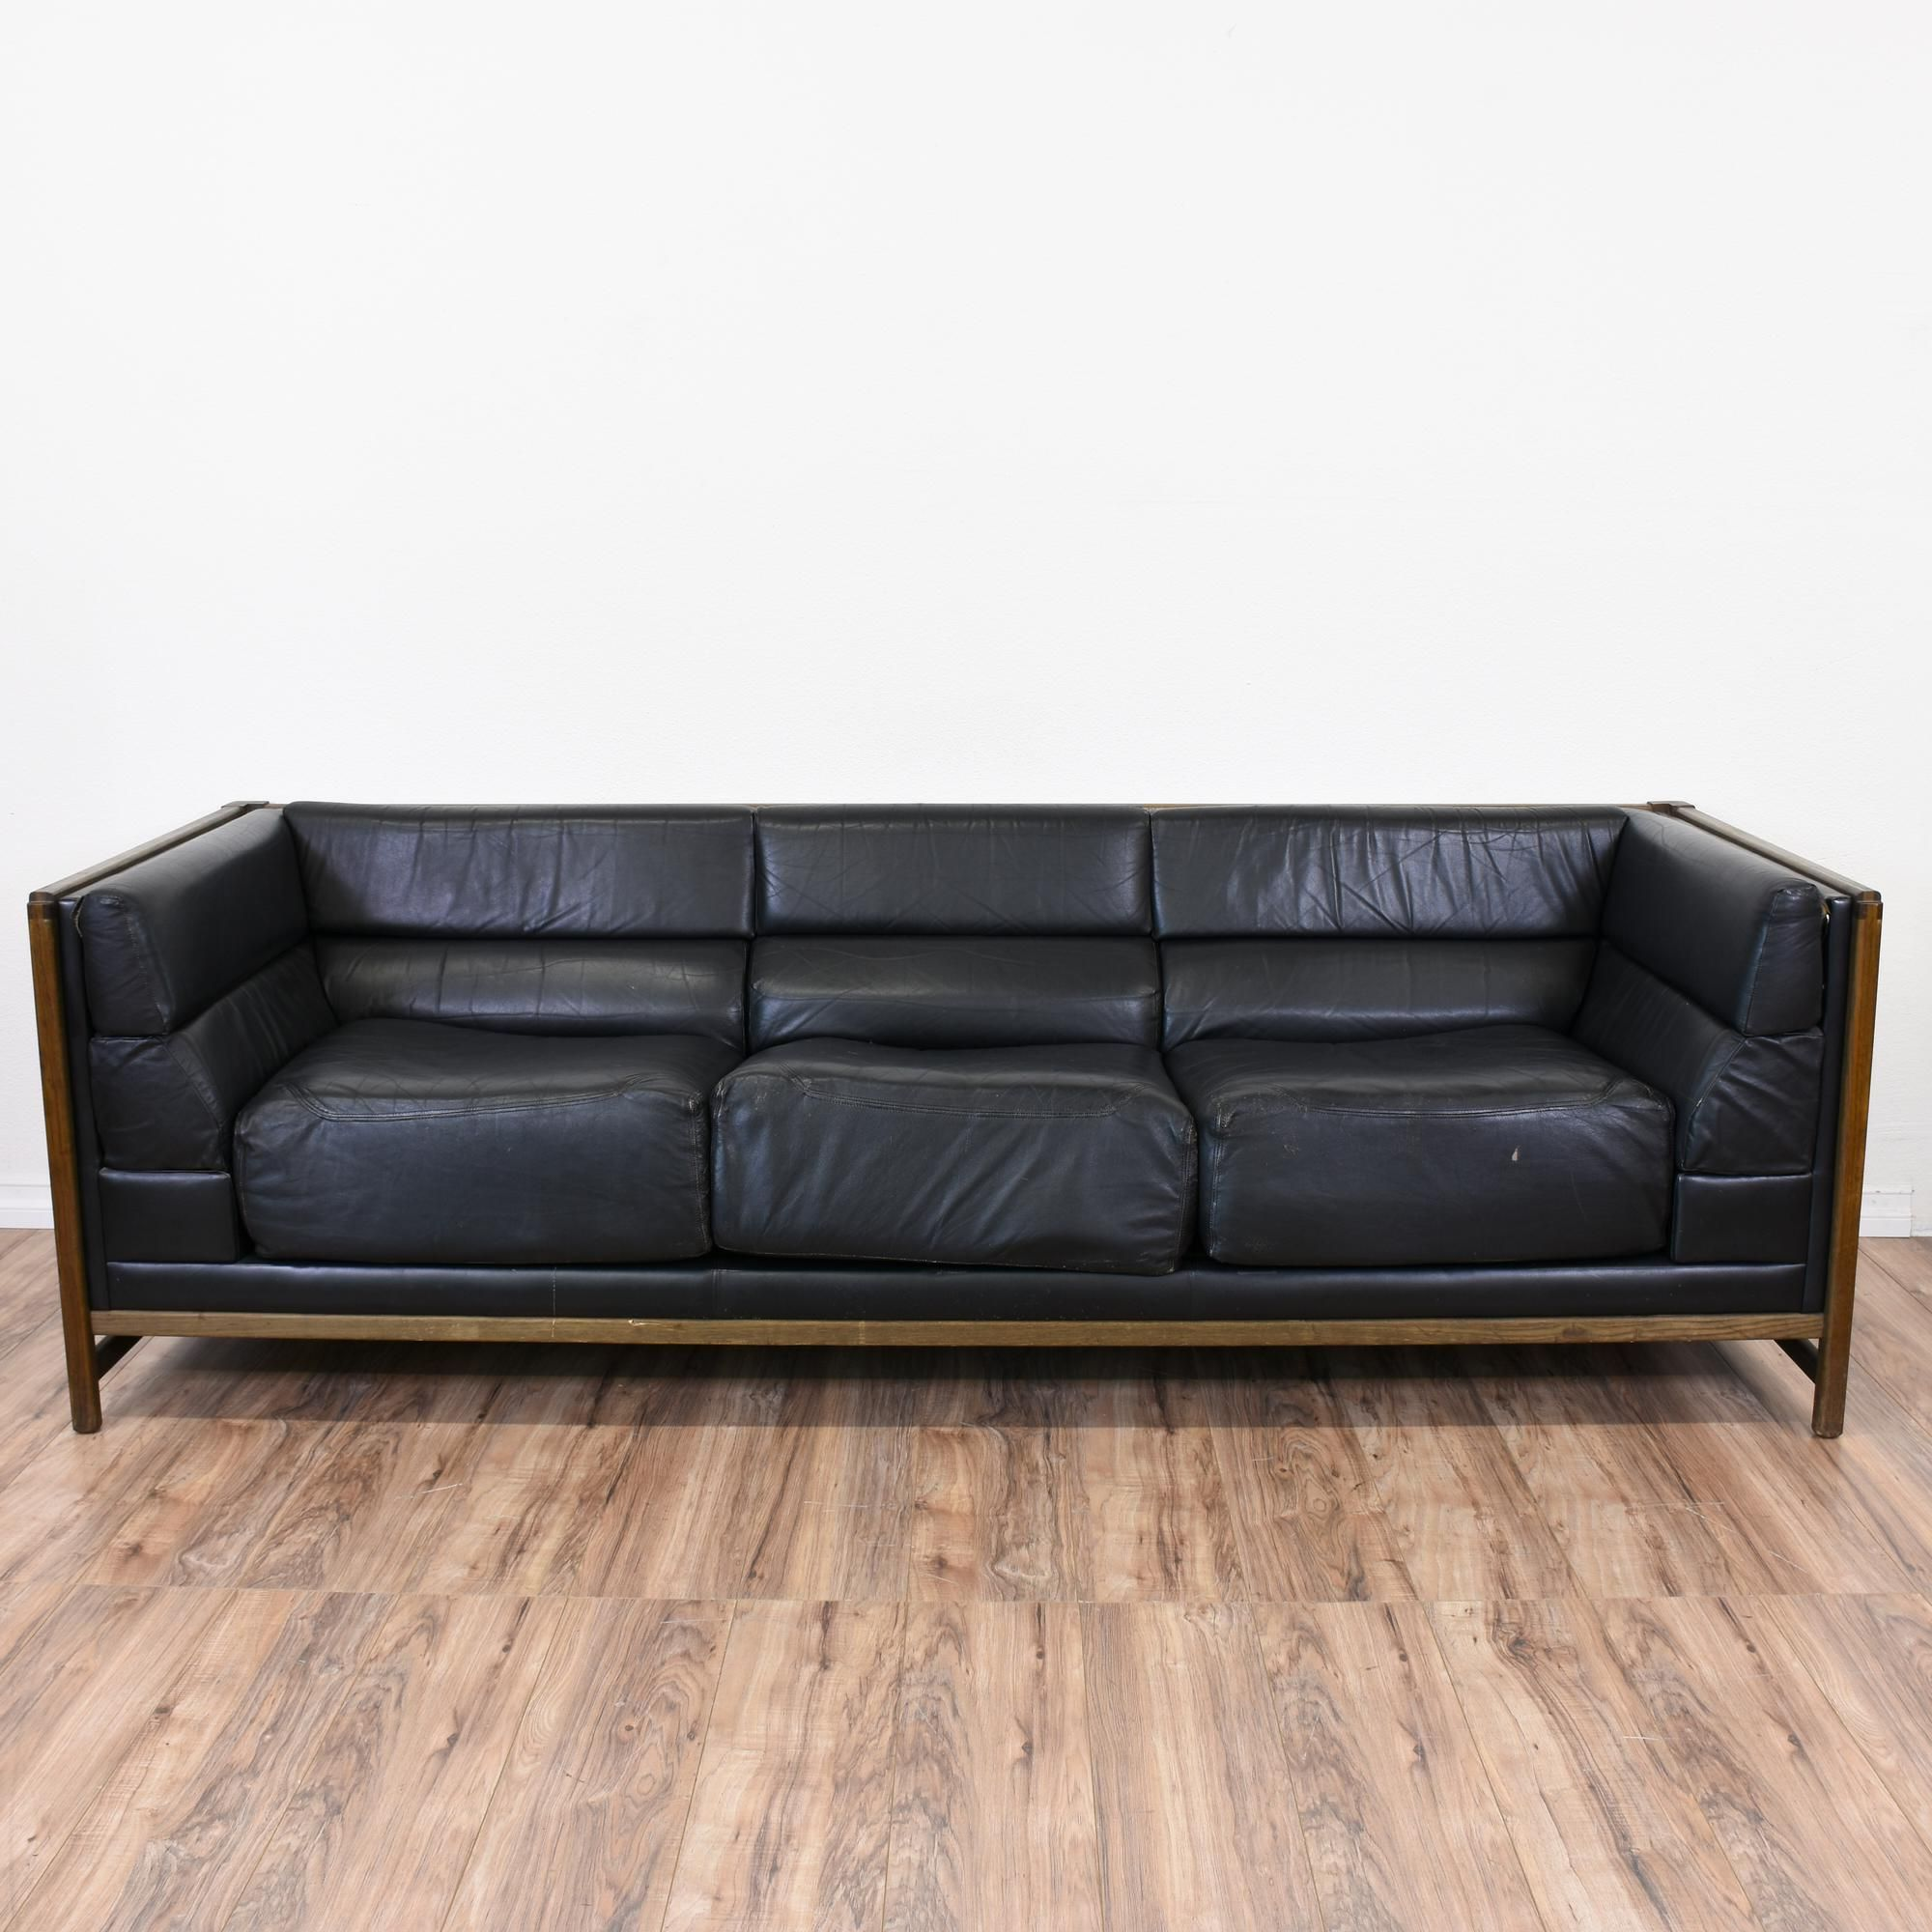 Sleek Leather Couch Sleek Black Leather Sofa Shapeyourminds